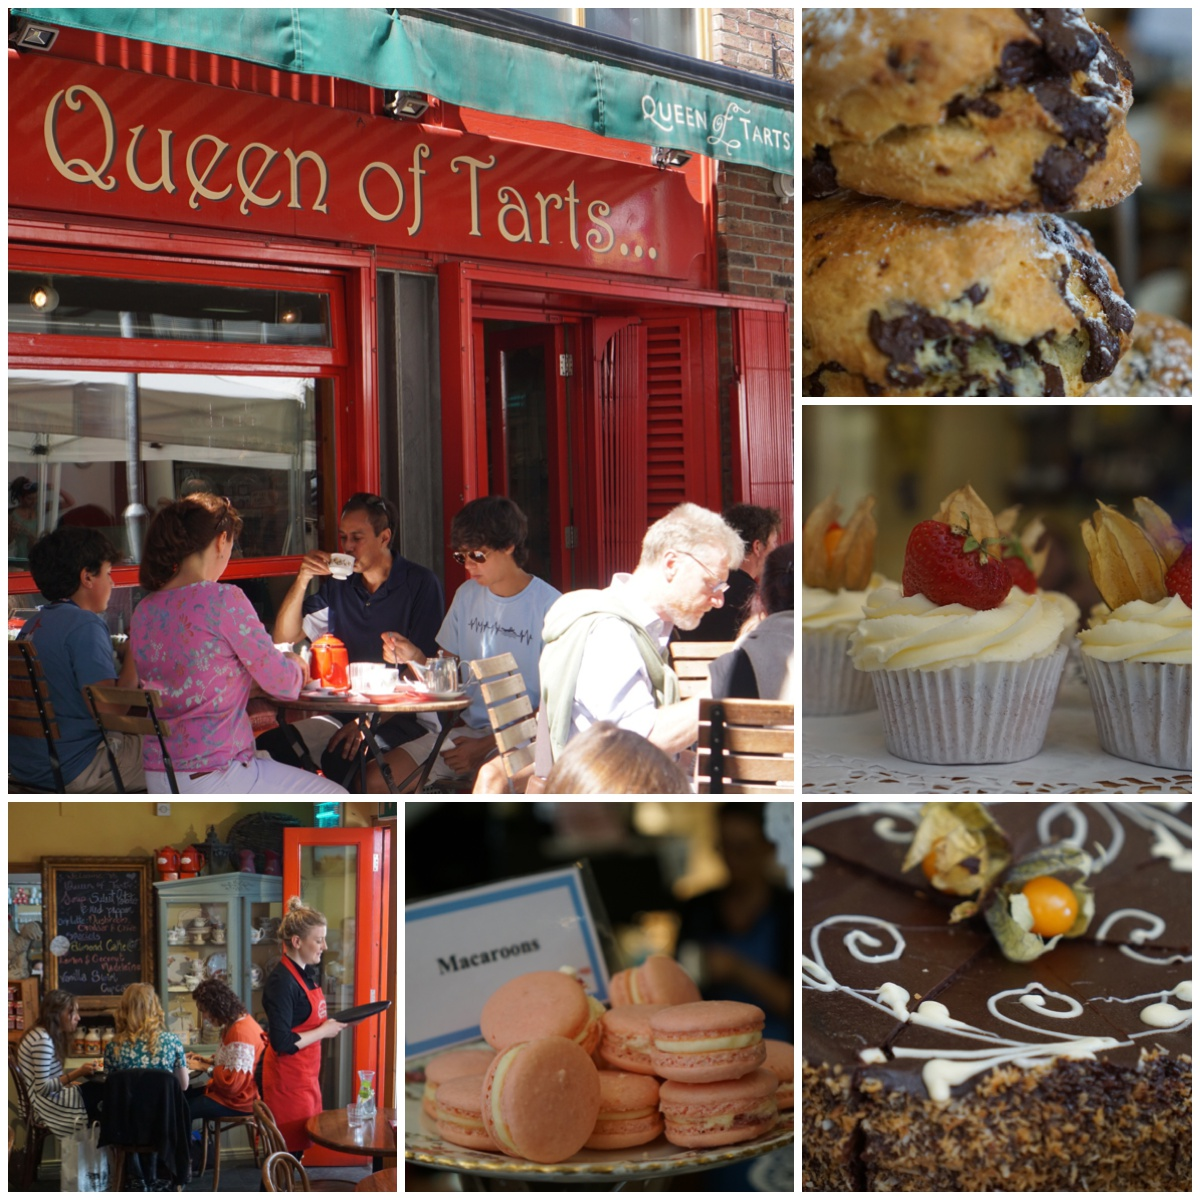 Dublin Queen of tarts, Dublin